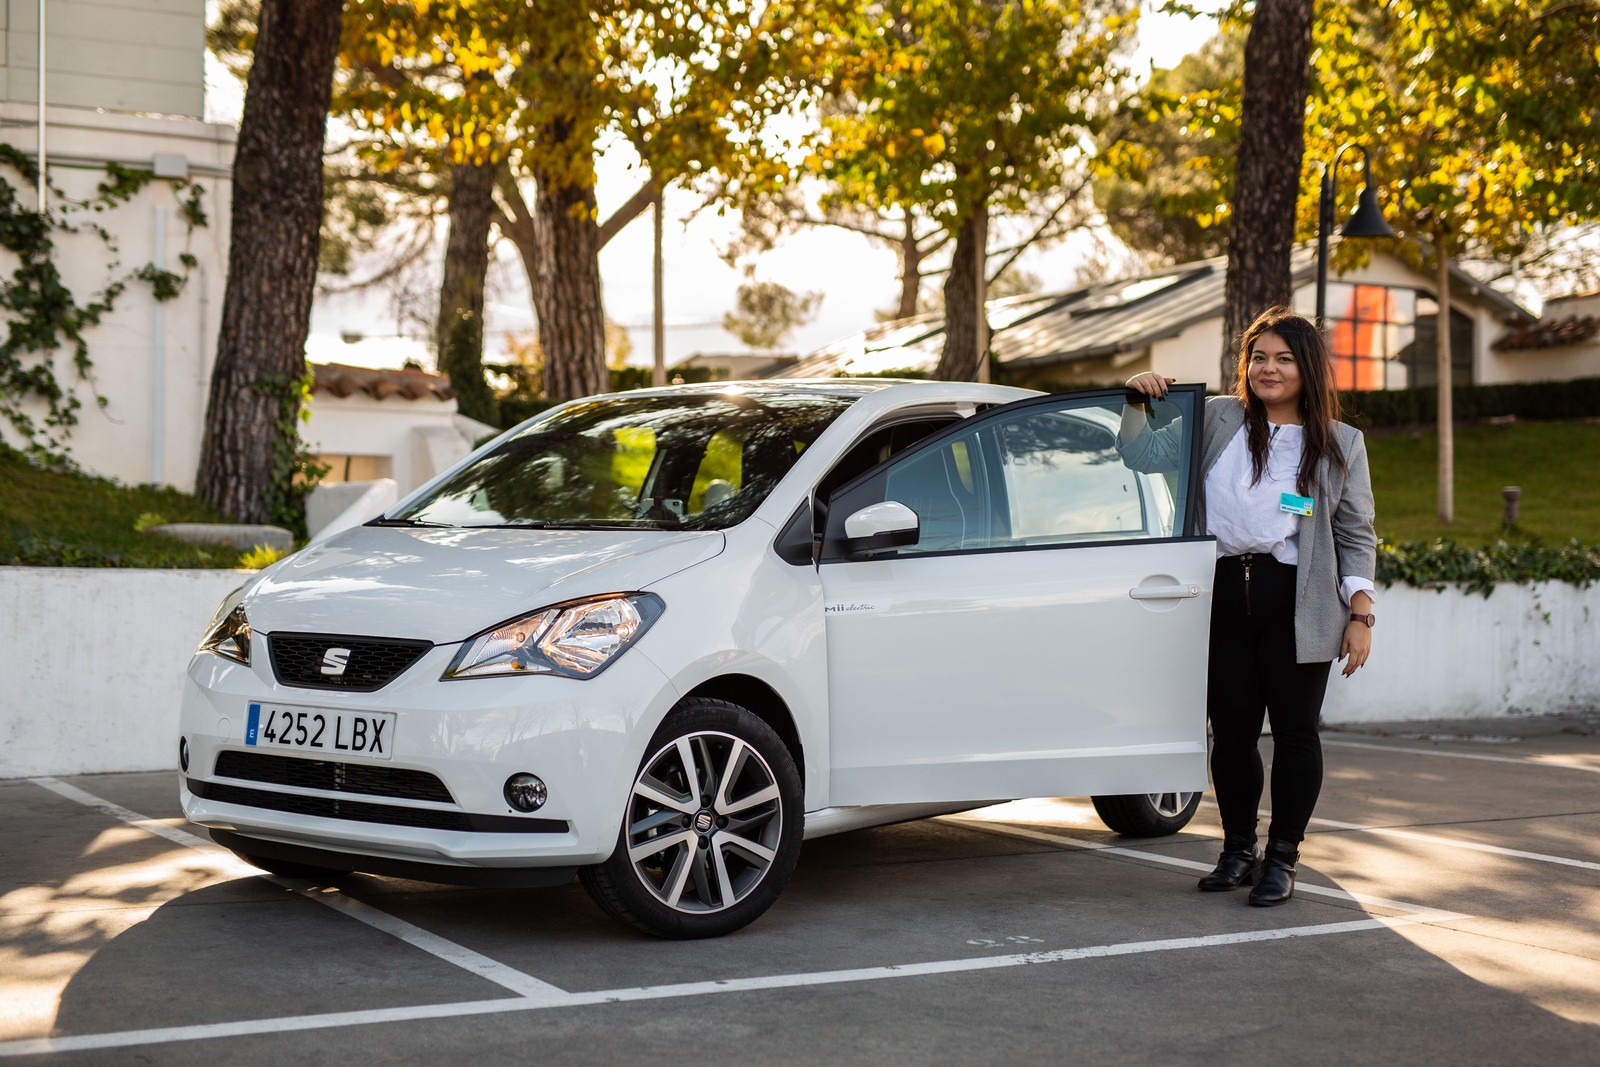 bfp fuhrpark & management war in Madrid, um den Seat Mii Electric ausgiebig zu testen.